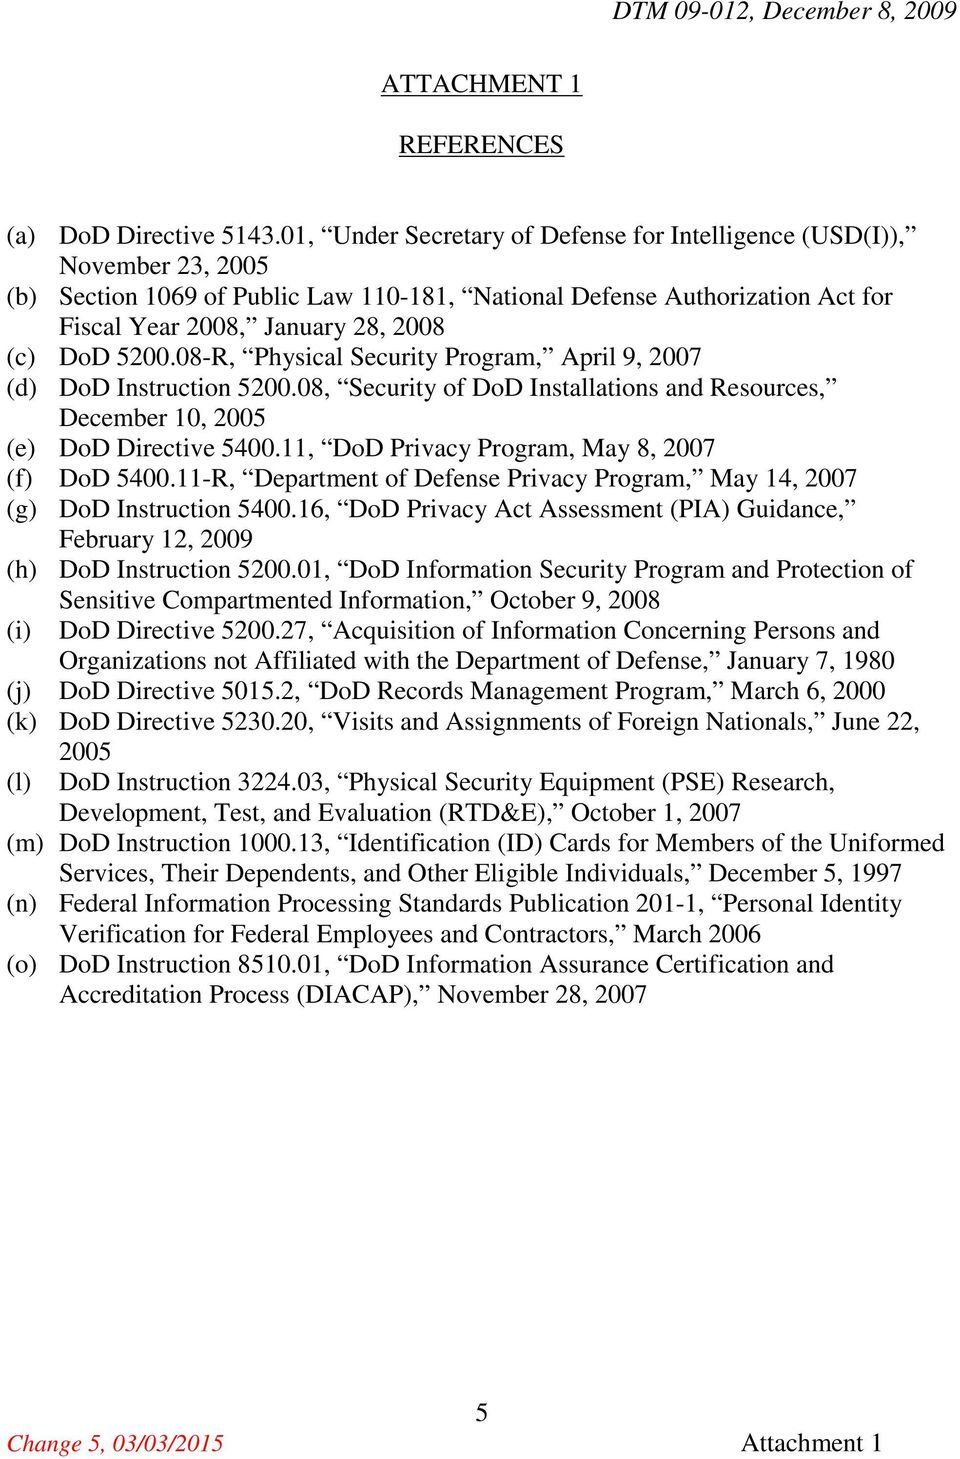 5200.08-R, Physical Security Program, April 9, 2007 (d) DoD Instruction 5200.08, Security of DoD Installations and Resources, December 10, 2005 (e) DoD Directive 5400.